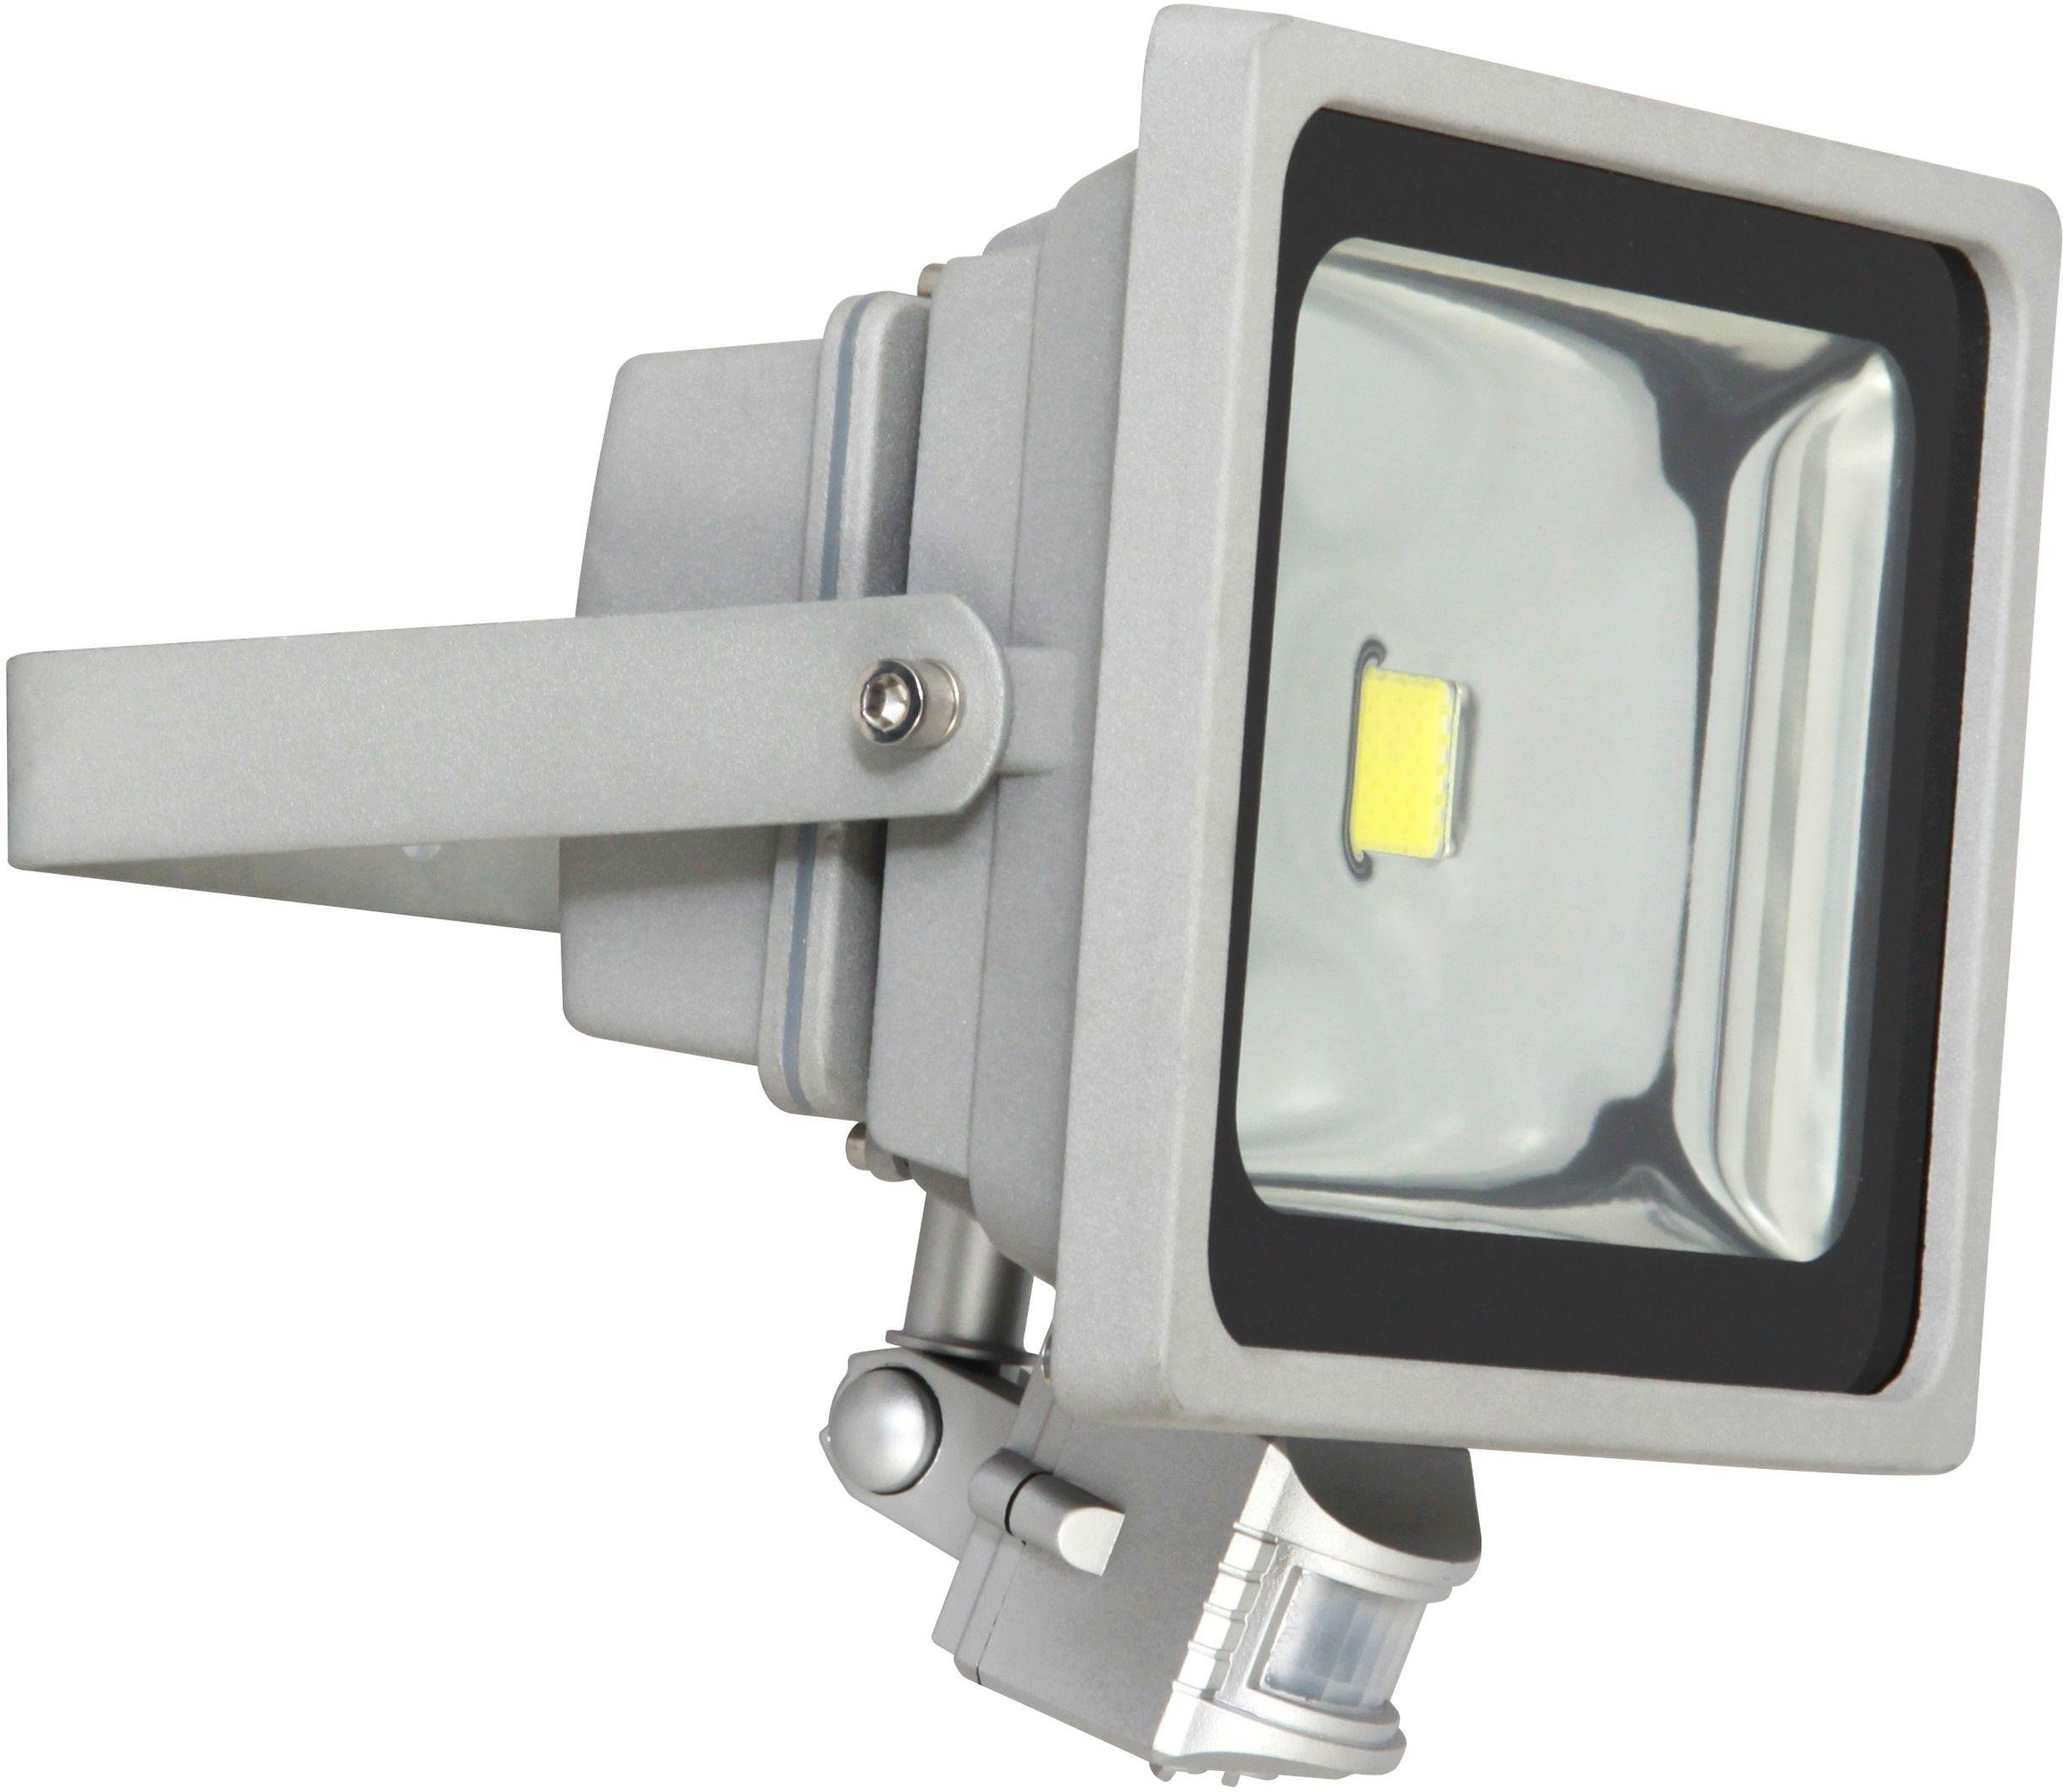 XQLite 30 Watt SMD LED Wall Flood Light with PIR